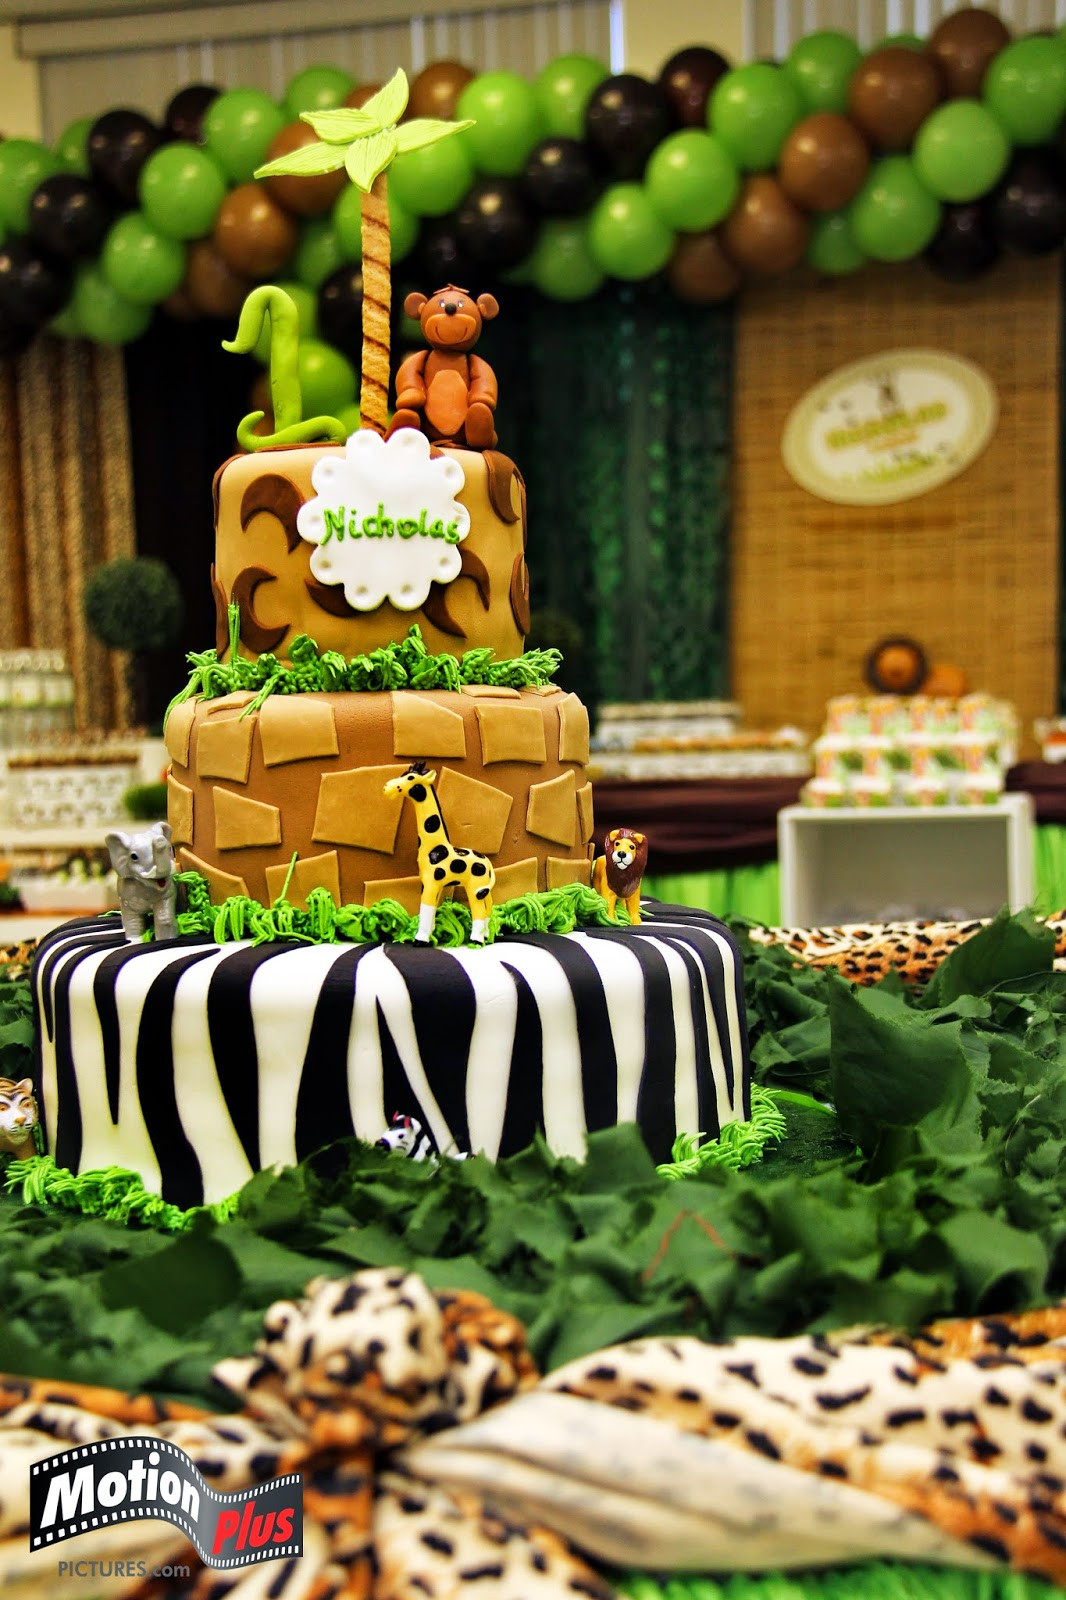 Best ideas about Safari Birthday Decorations . Save or Pin Motion Plus Safari Themed Birthday Party Ideas Now.